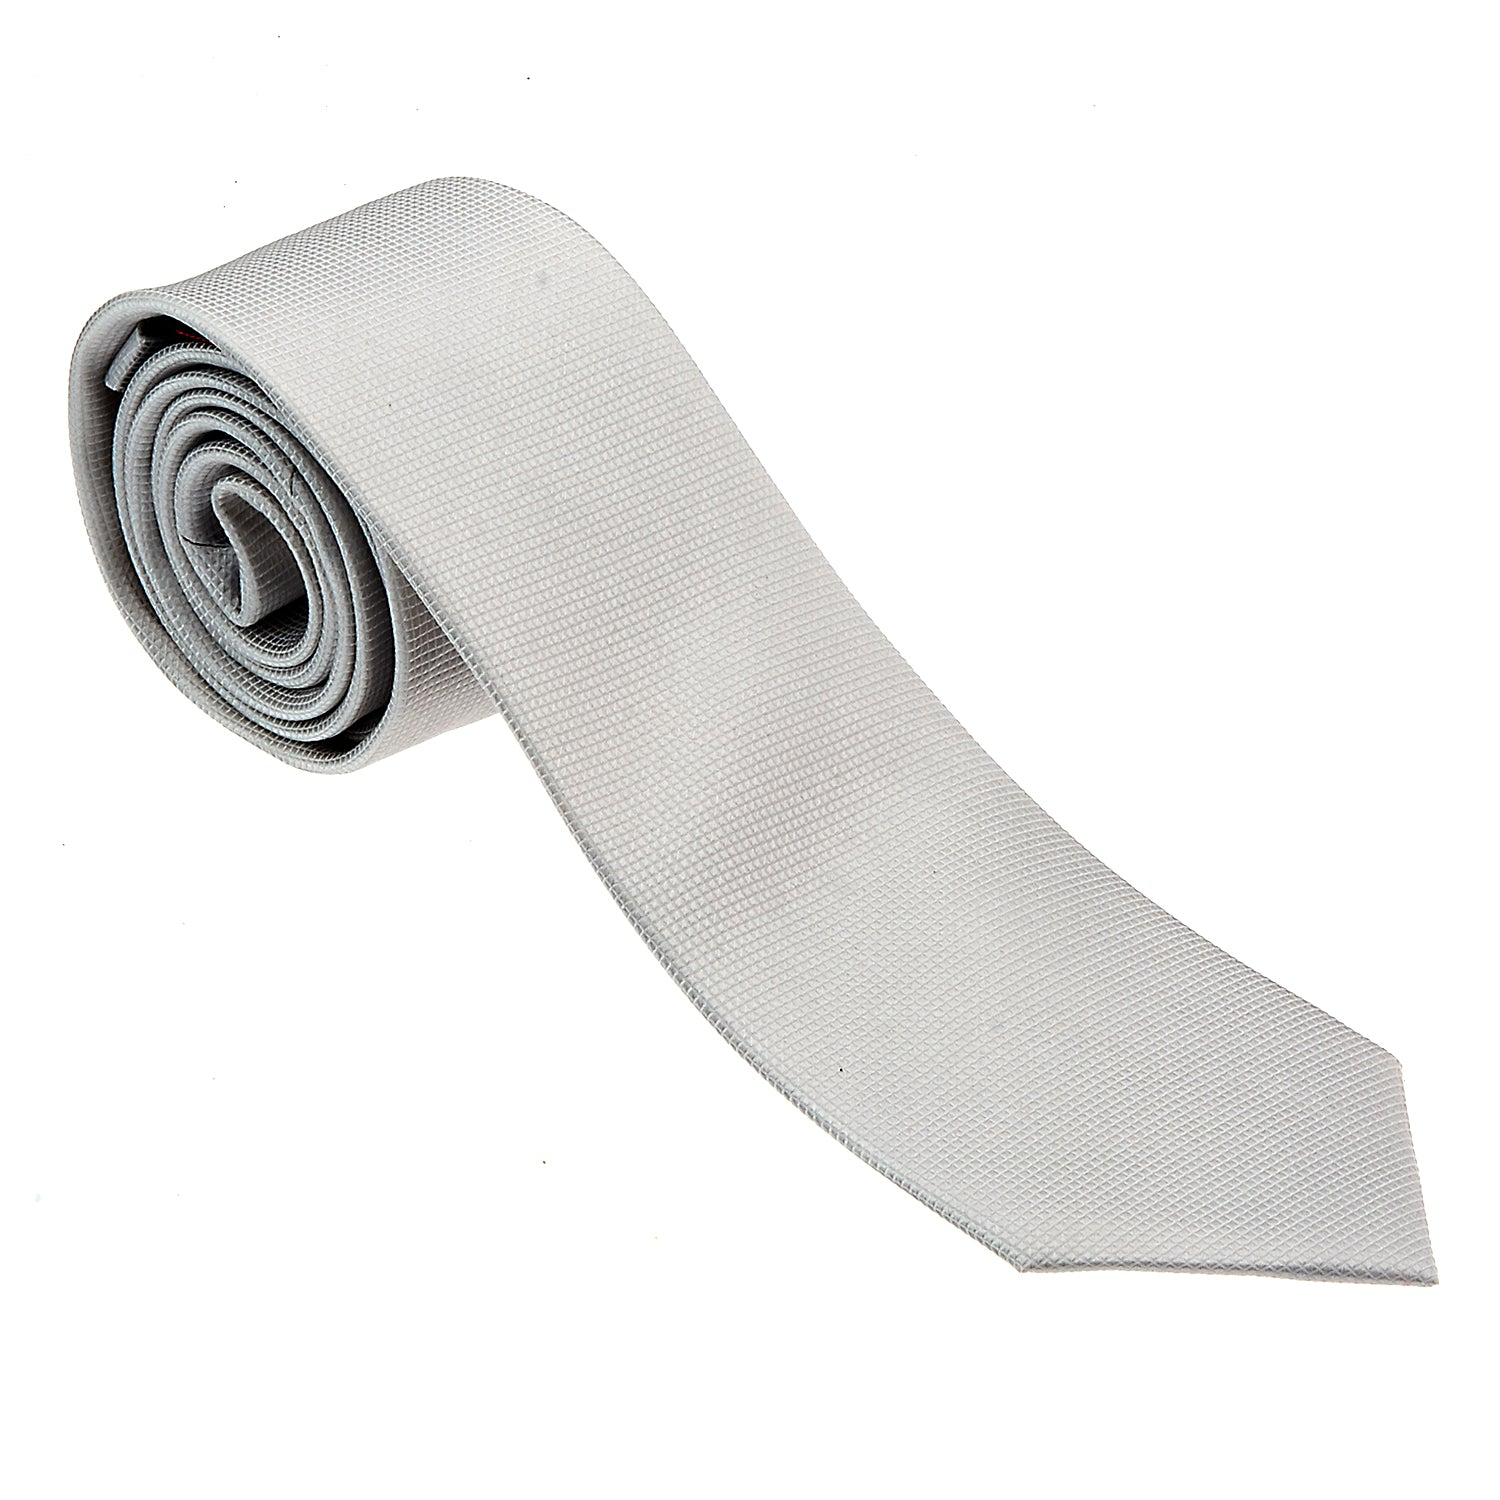 Light Grey Tie-The Suit Spot-Wedding Suits-Wedding Tuxedos-Groomsmen Suits-Groomsmen Tuxedos-Slim Fit Suits-Slim Fit Tuxedos-Online wedding suits